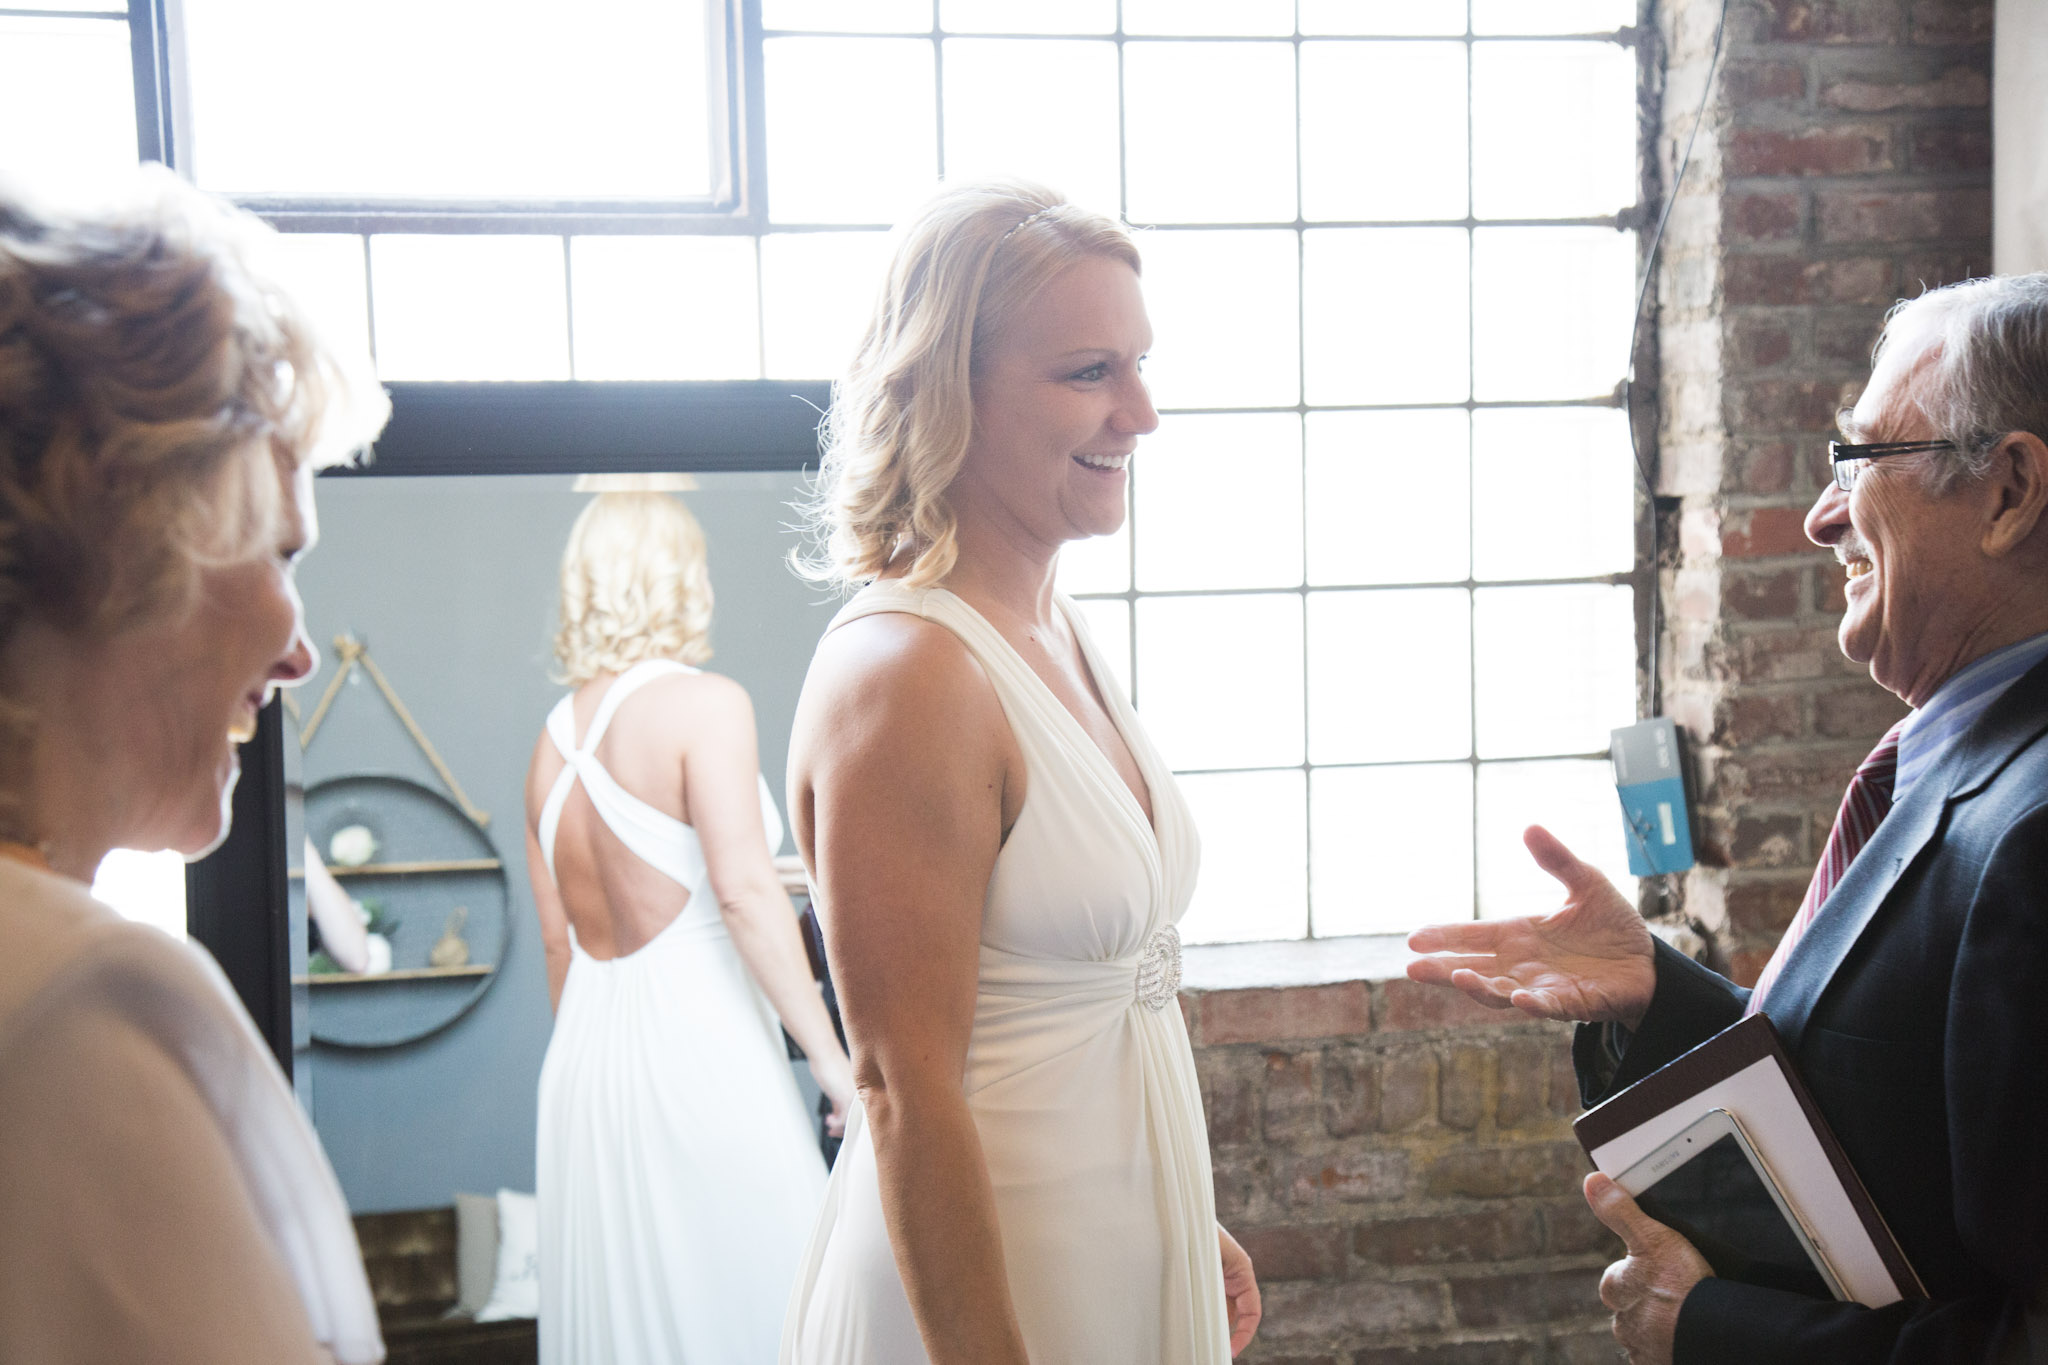 Kansas_City_Small_Wedding_Venue_Elope_Intimate_Ceremony_Budget_Affordable_Erin_Brandon-45.jpg